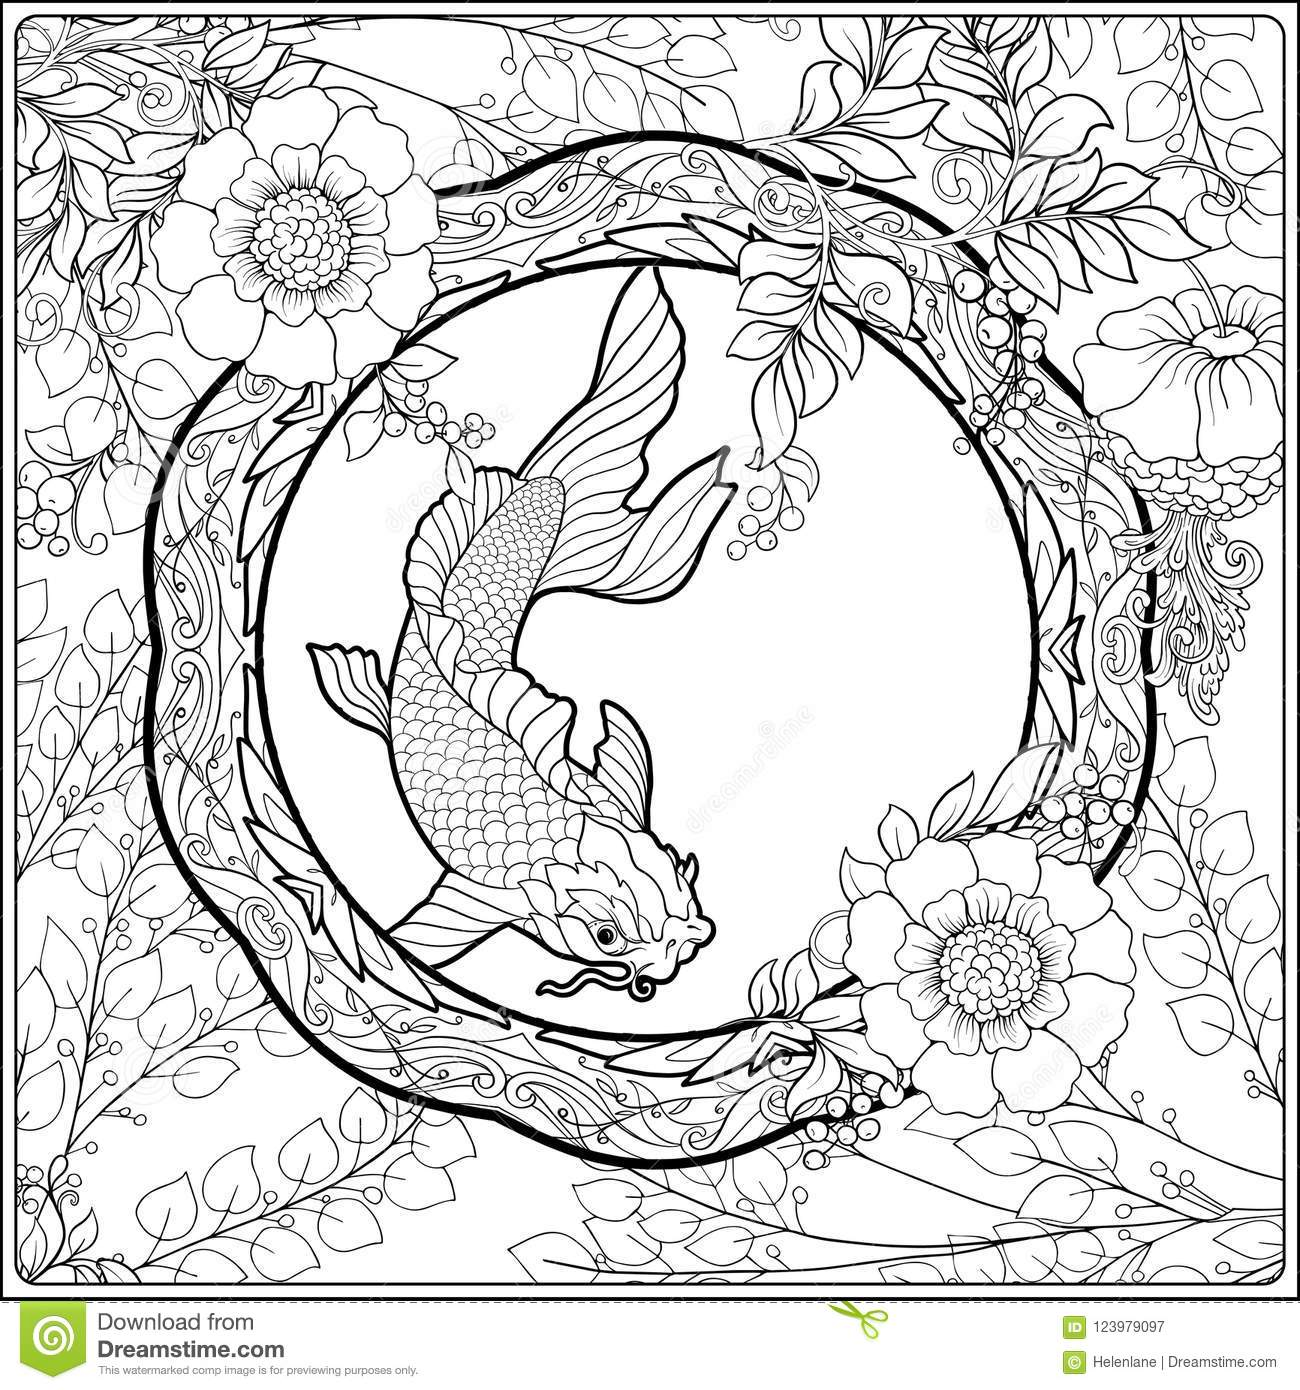 Poster With Decorative Flowers And Carp Fish In Art Nouveau Style Page For The Adult Coloring Book Stock Vector Illustration Of Page Design 123979097